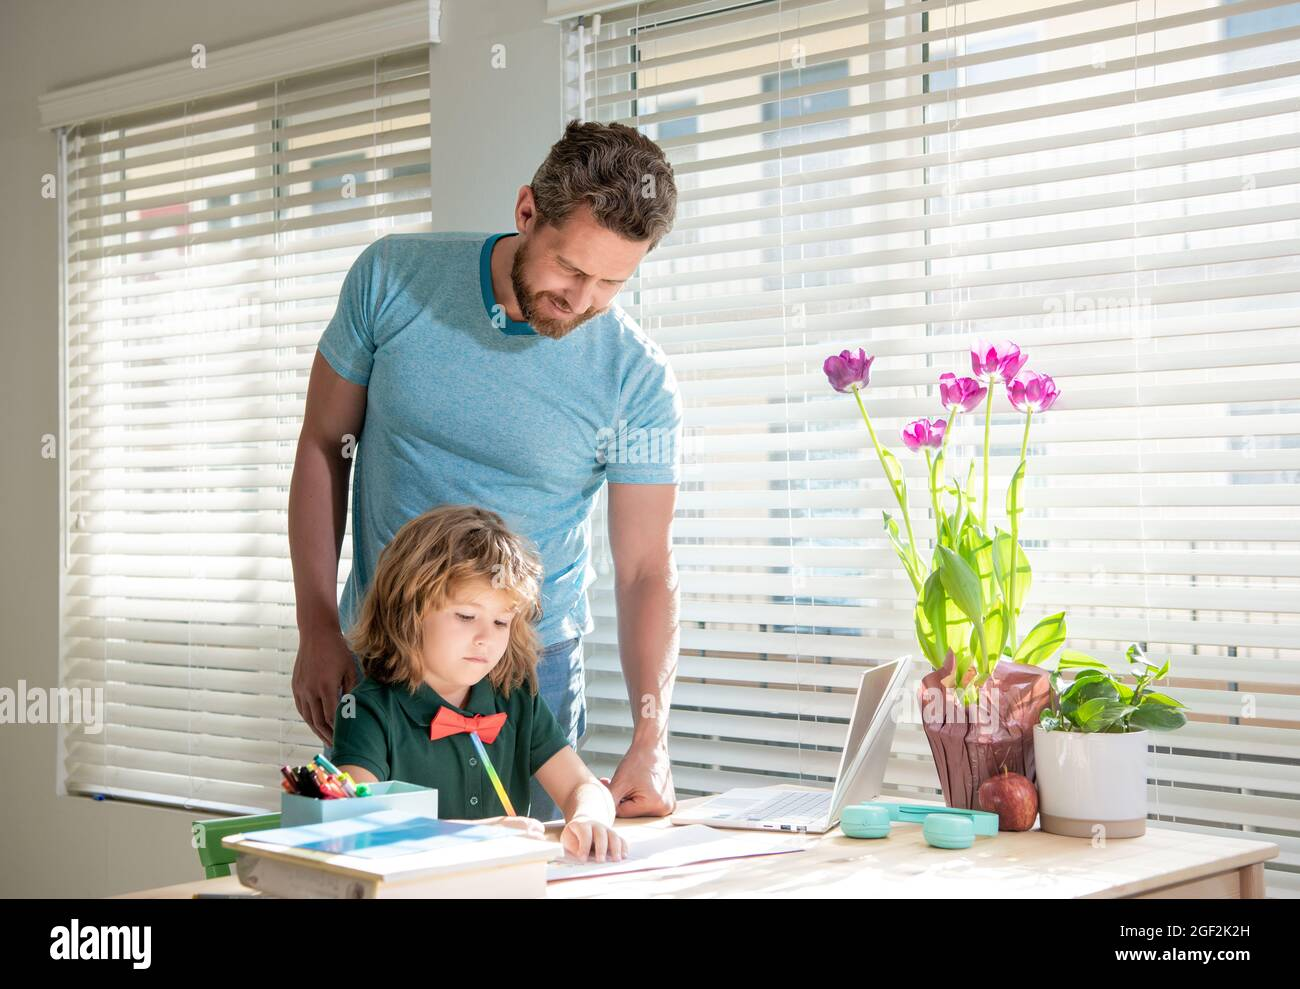 boy study with teacher. private drawing lesson. education concept. homeschooling and help. Stock Photo